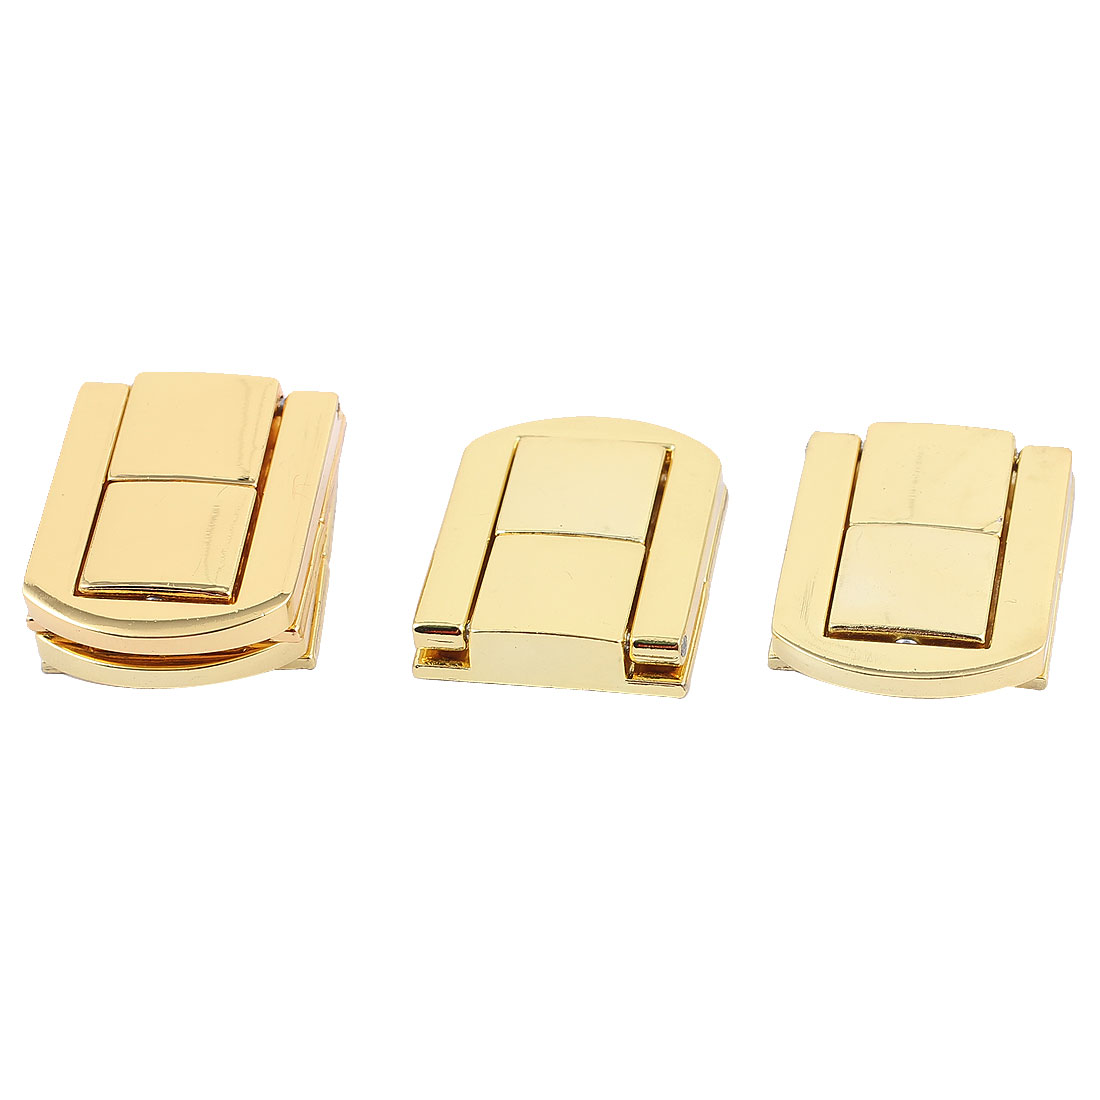 Boxes Latch Gift Case Latches Box Hardware Gold Tone 4PCS